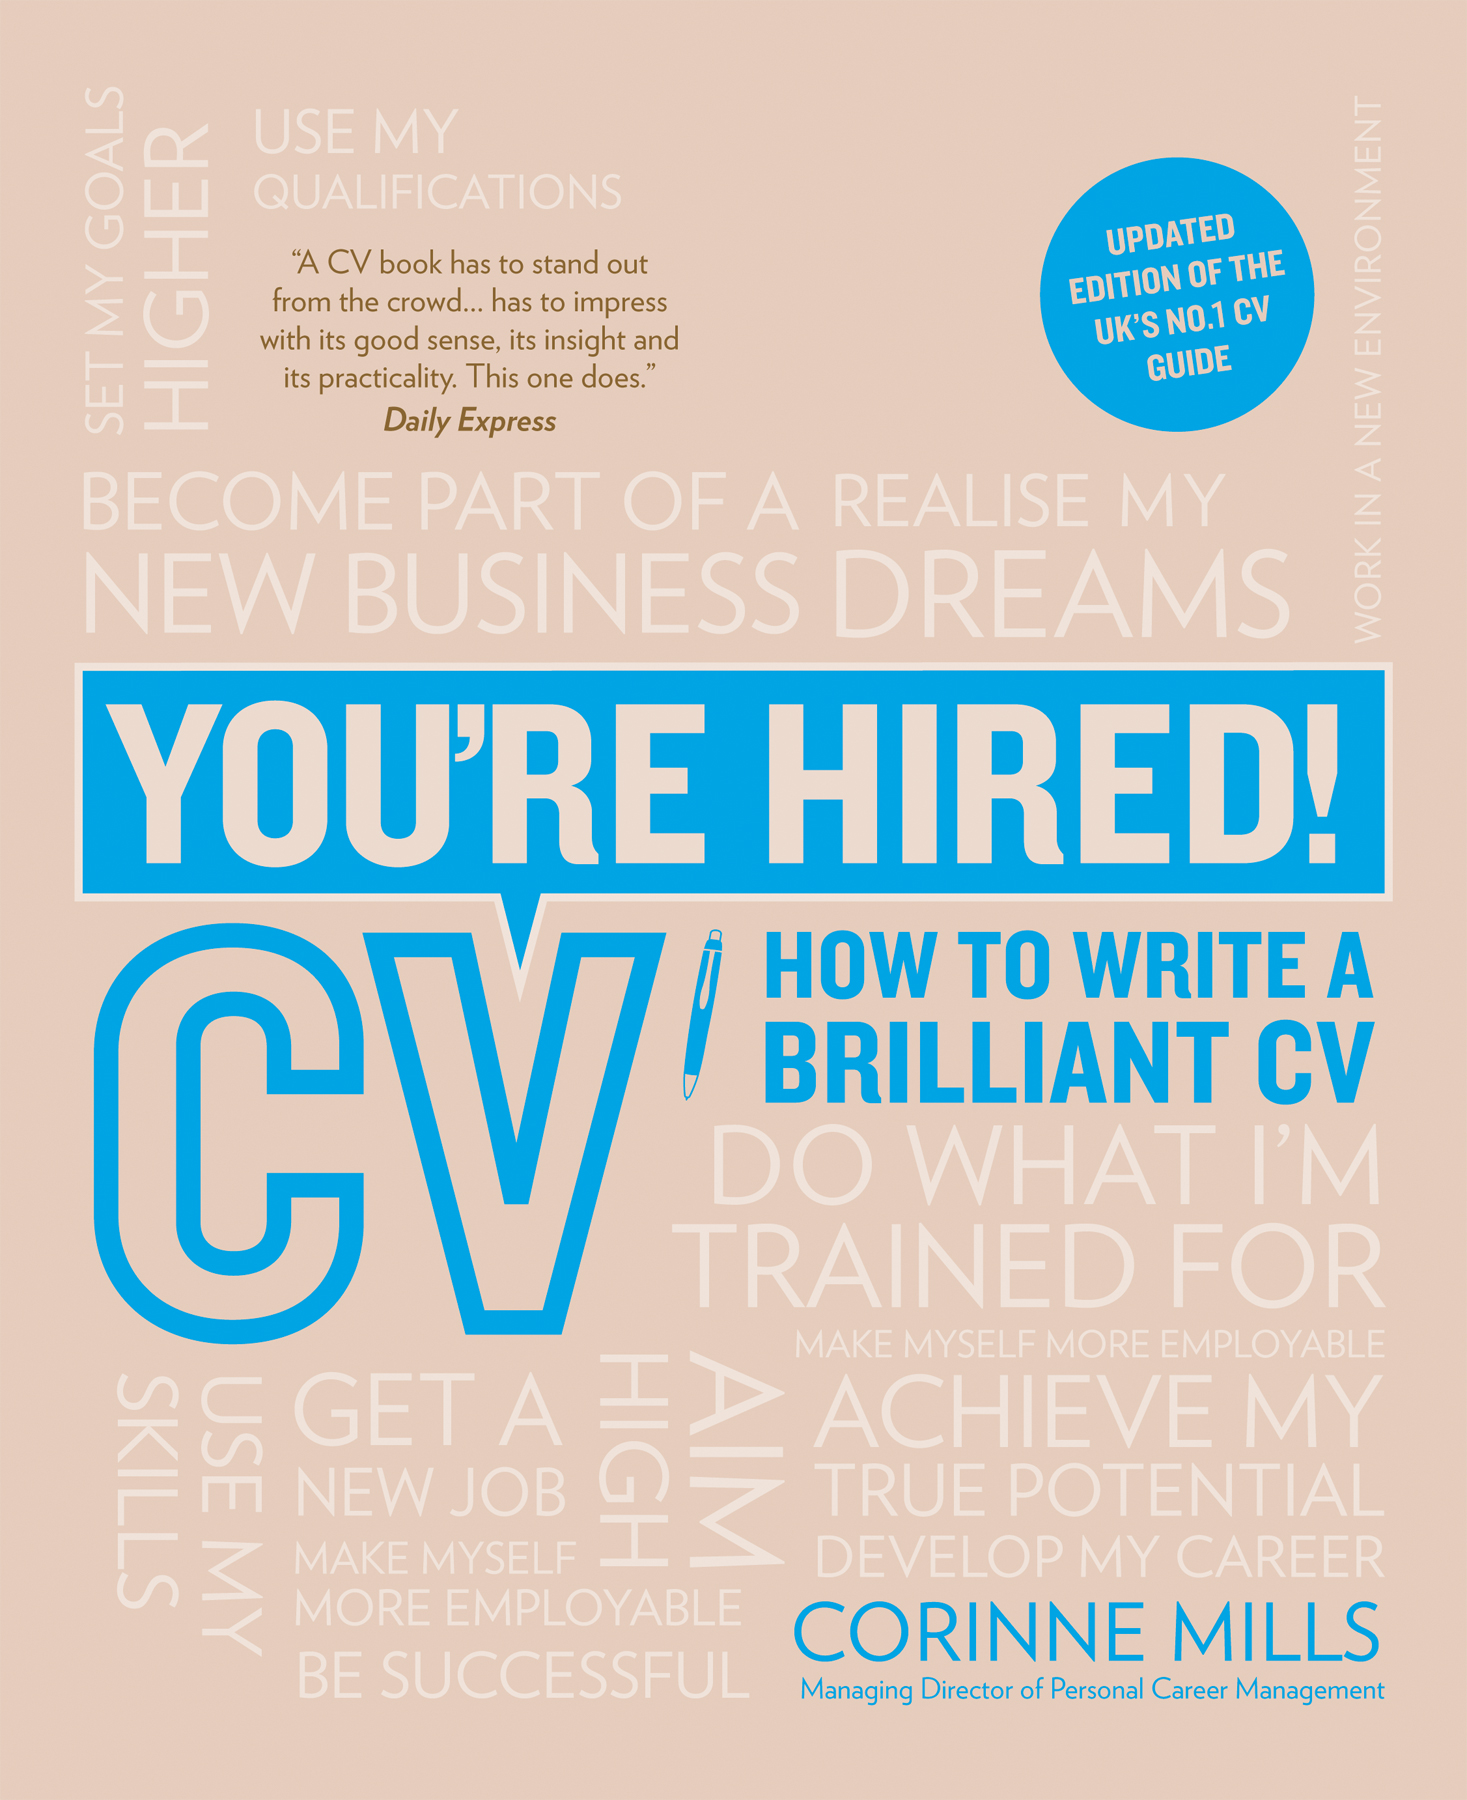 CV Writing Articles And Information - Personal Career Management